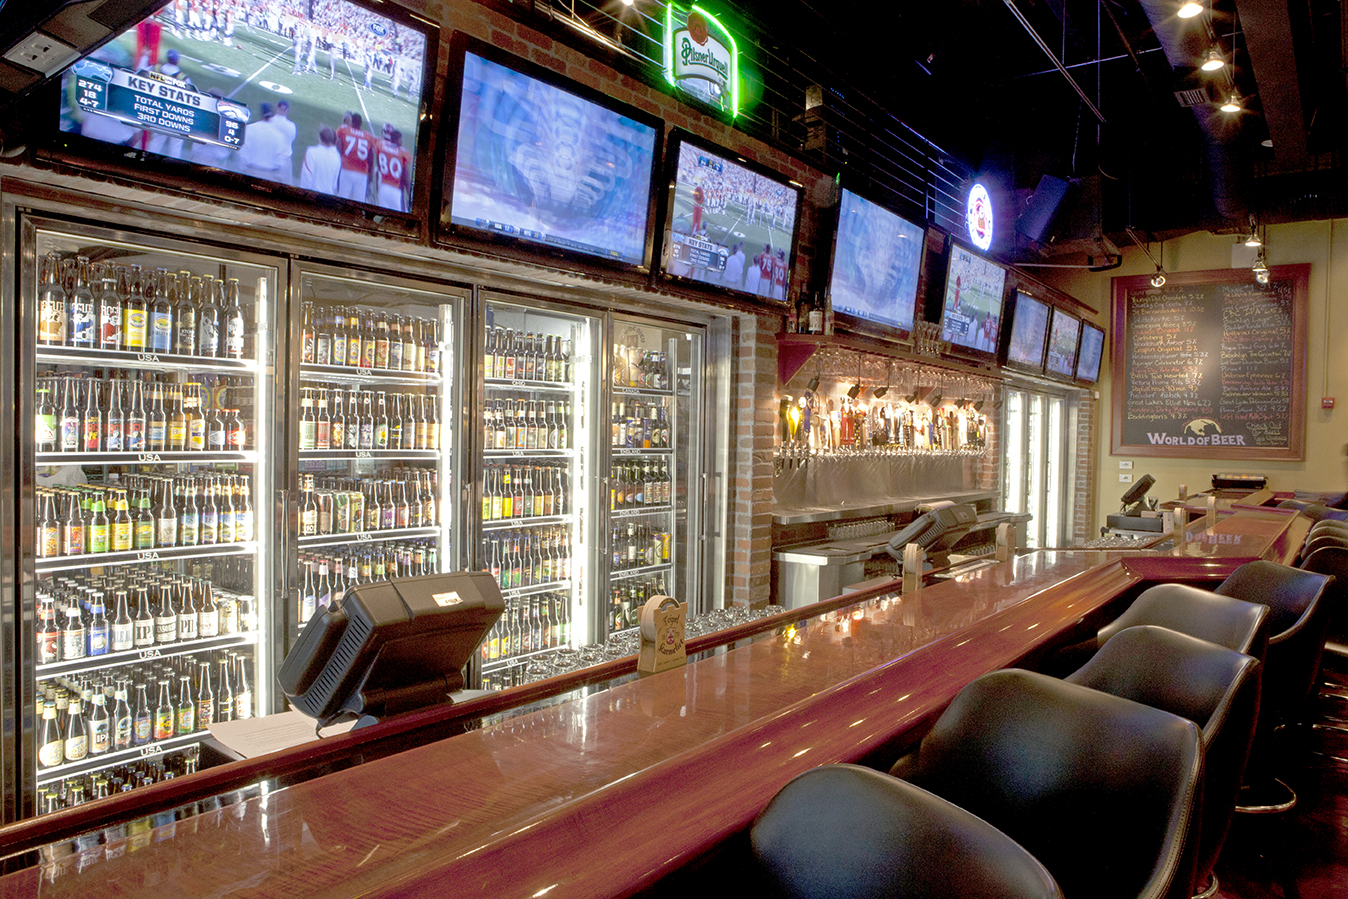 World of Beer at Gateway to change to The District PourHouse